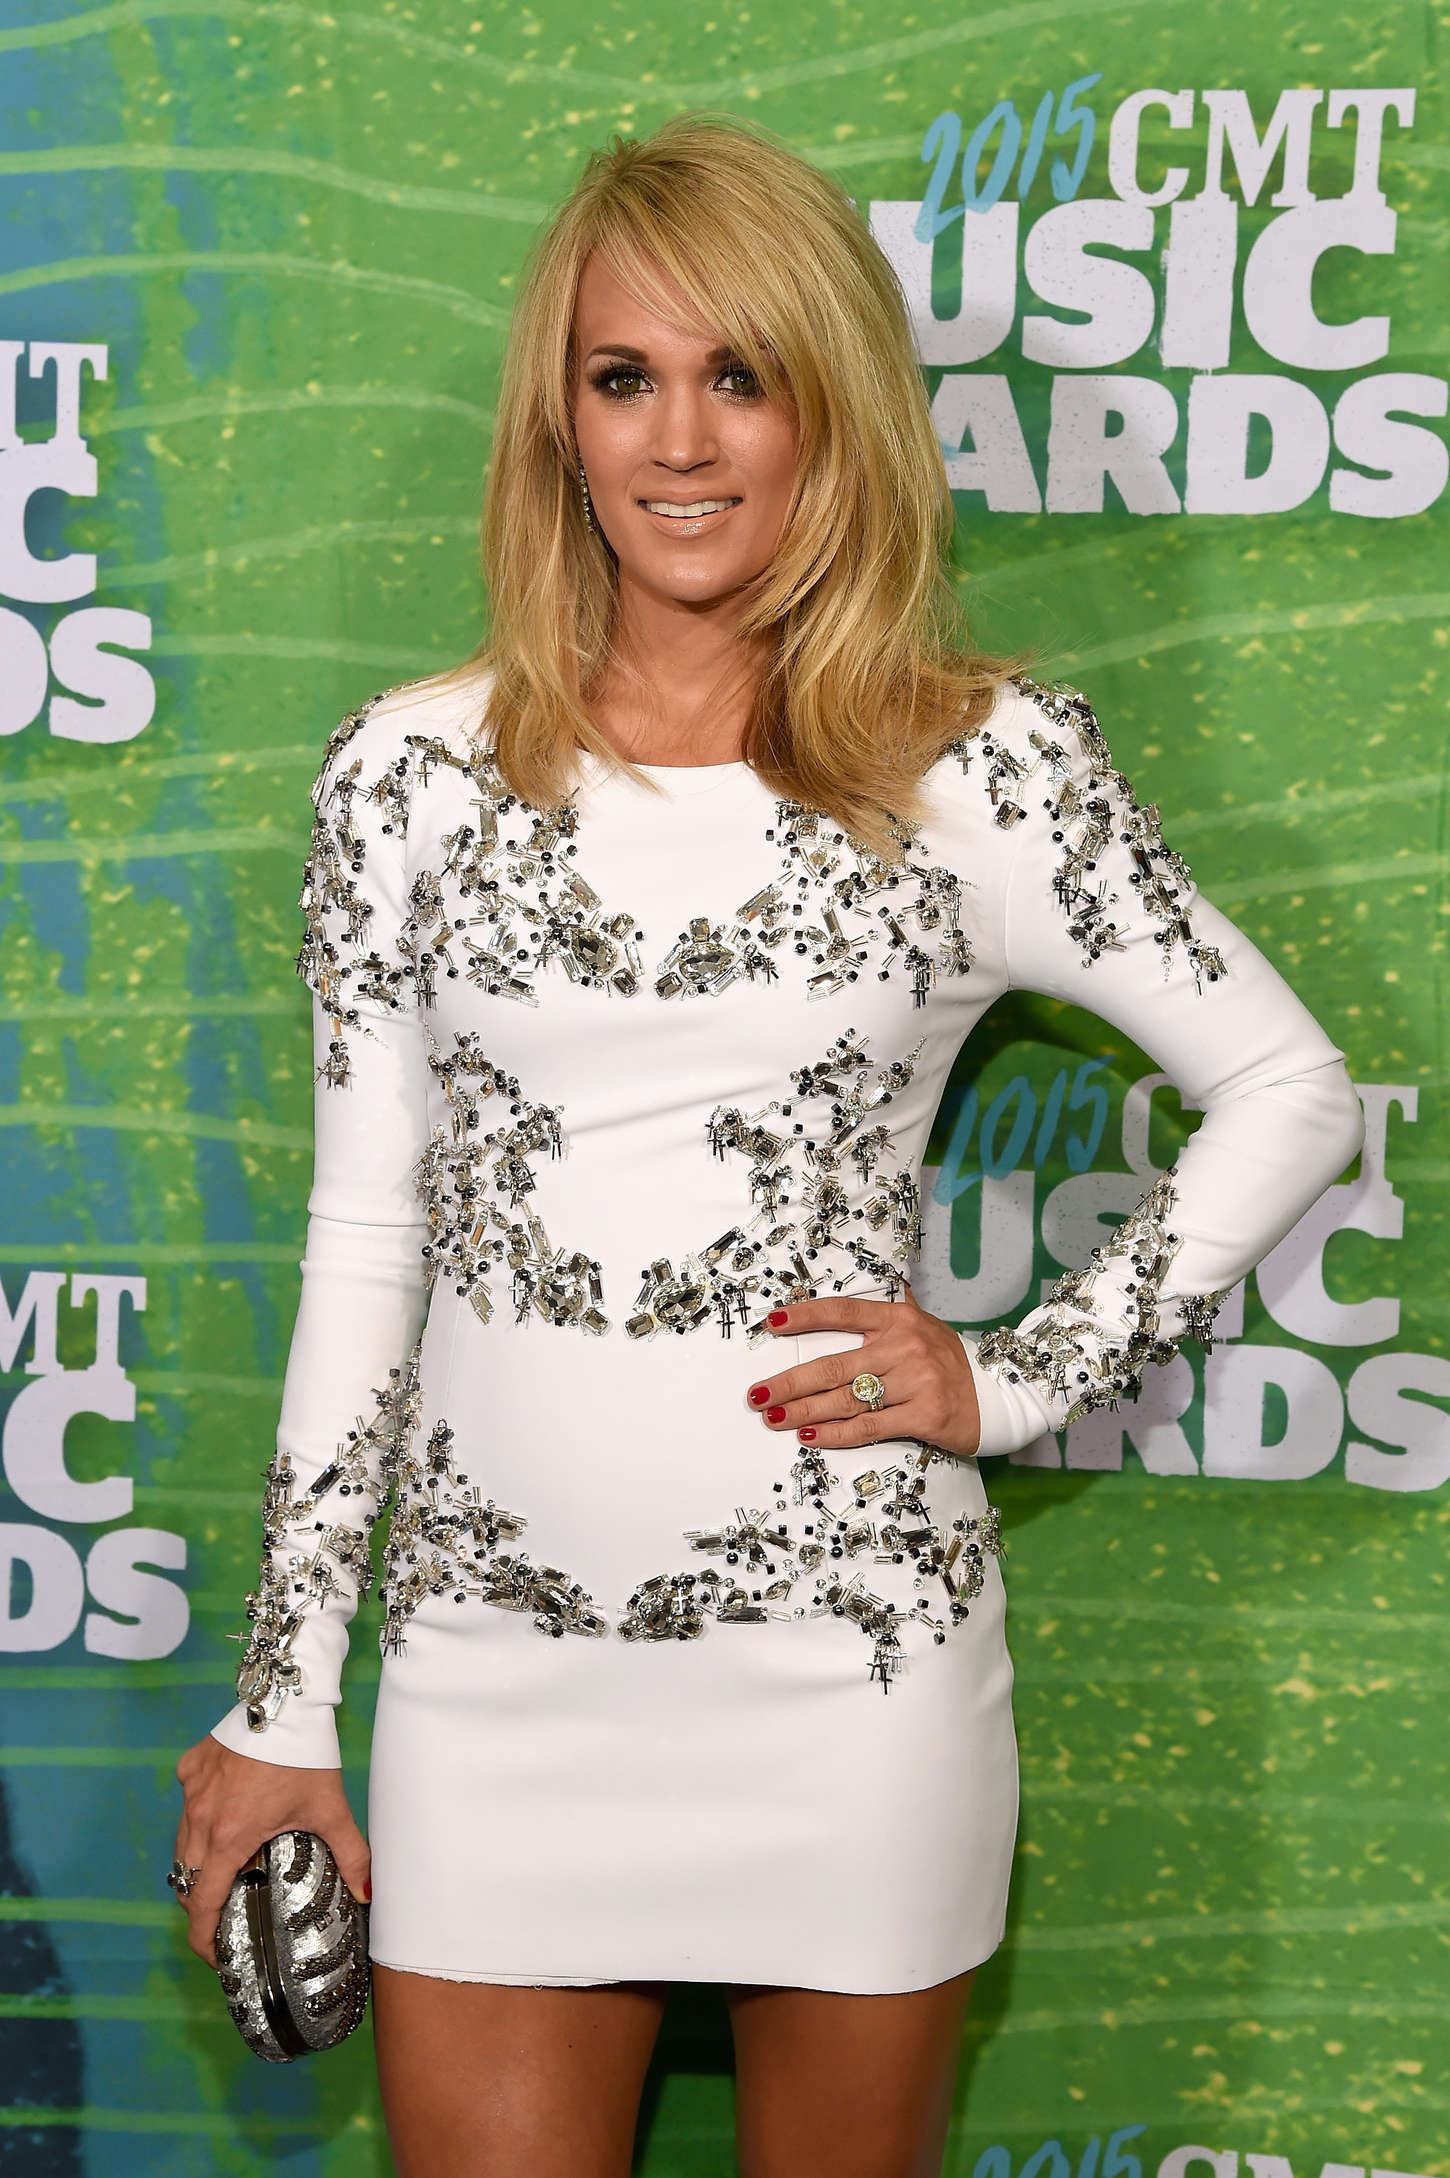 carrie underwood 2015 cmt music awards in nashville. Black Bedroom Furniture Sets. Home Design Ideas